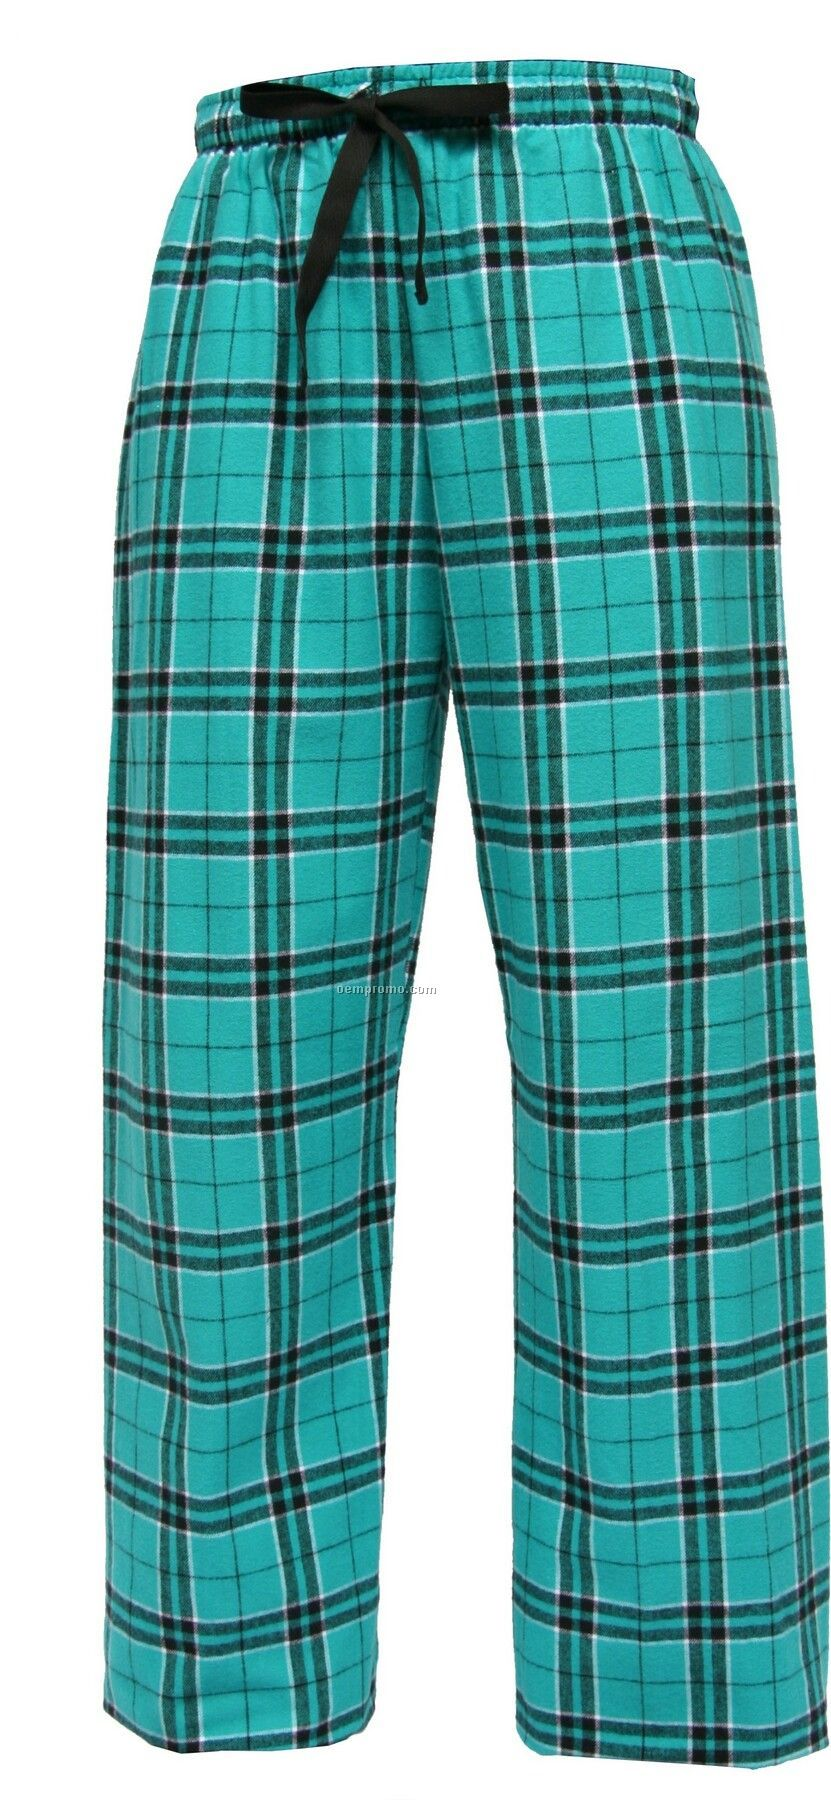 Adult Team Pride Flannel Pant In Teal Green & Black Plaid